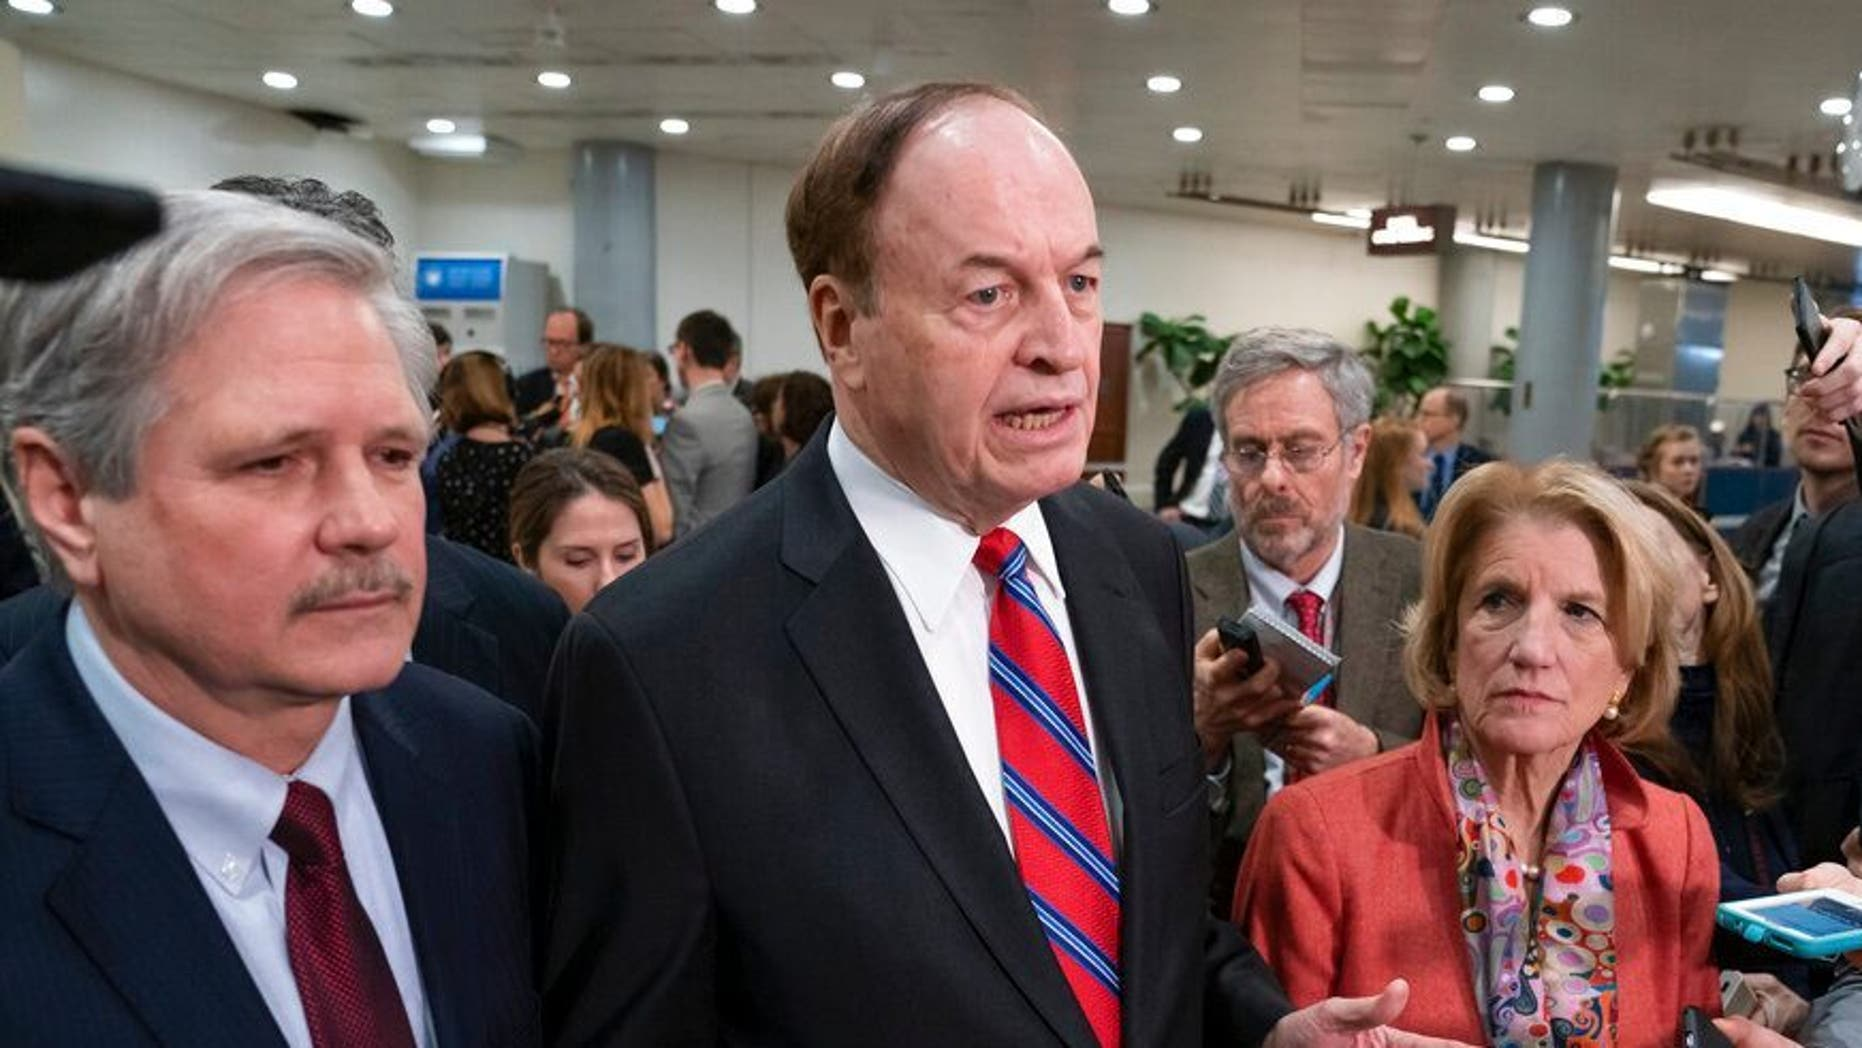 In this Feb. 6, 2019, photo, Sen. Richard Shelby, R-Ala., the top Republican on the bipartisan group bargainers working to craft a border security compromise in hope of avoiding another government shutdown, is joined by Sen. John Hoeven, R-N.D., left, and Sen. Shelley Moore Capito, R-W.Va., right, as they speak with reporters in Washington. (AP Photo/J. Scott Applewhite)